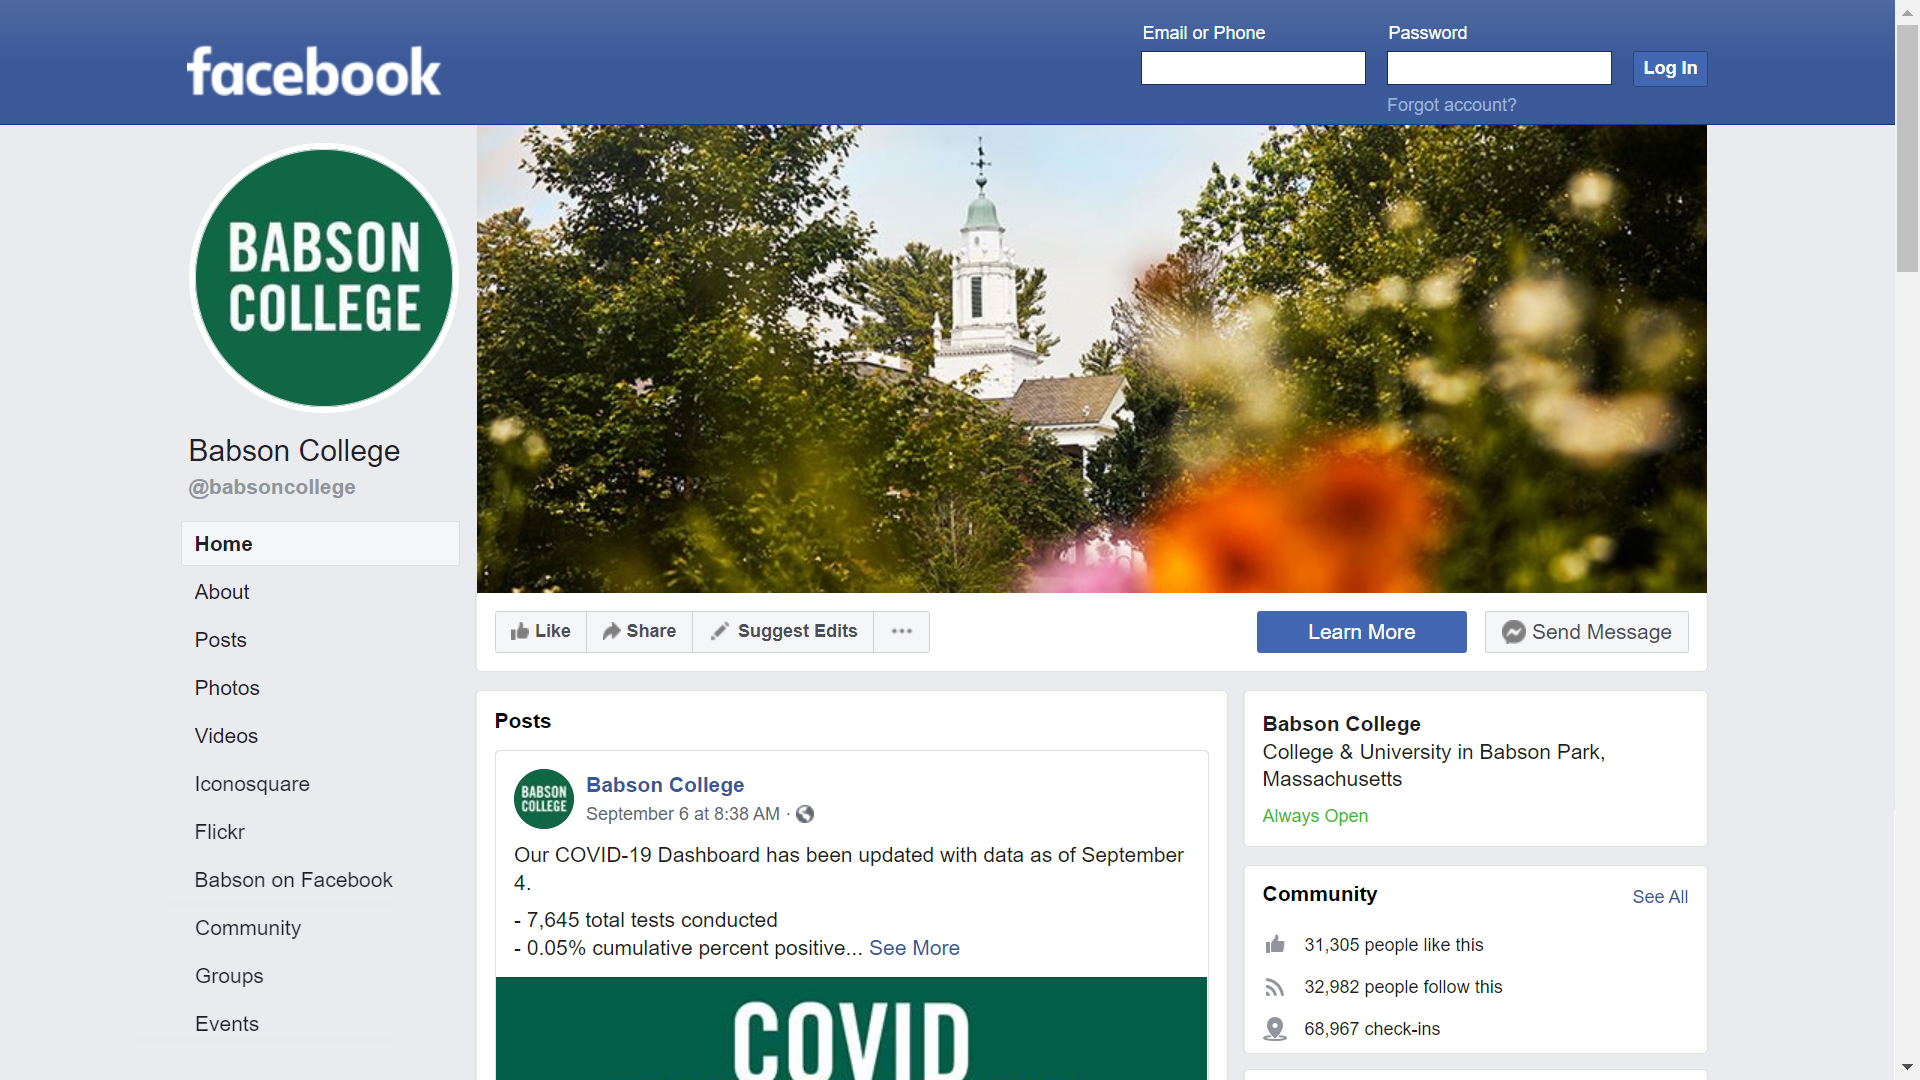 Babson College on Facebook